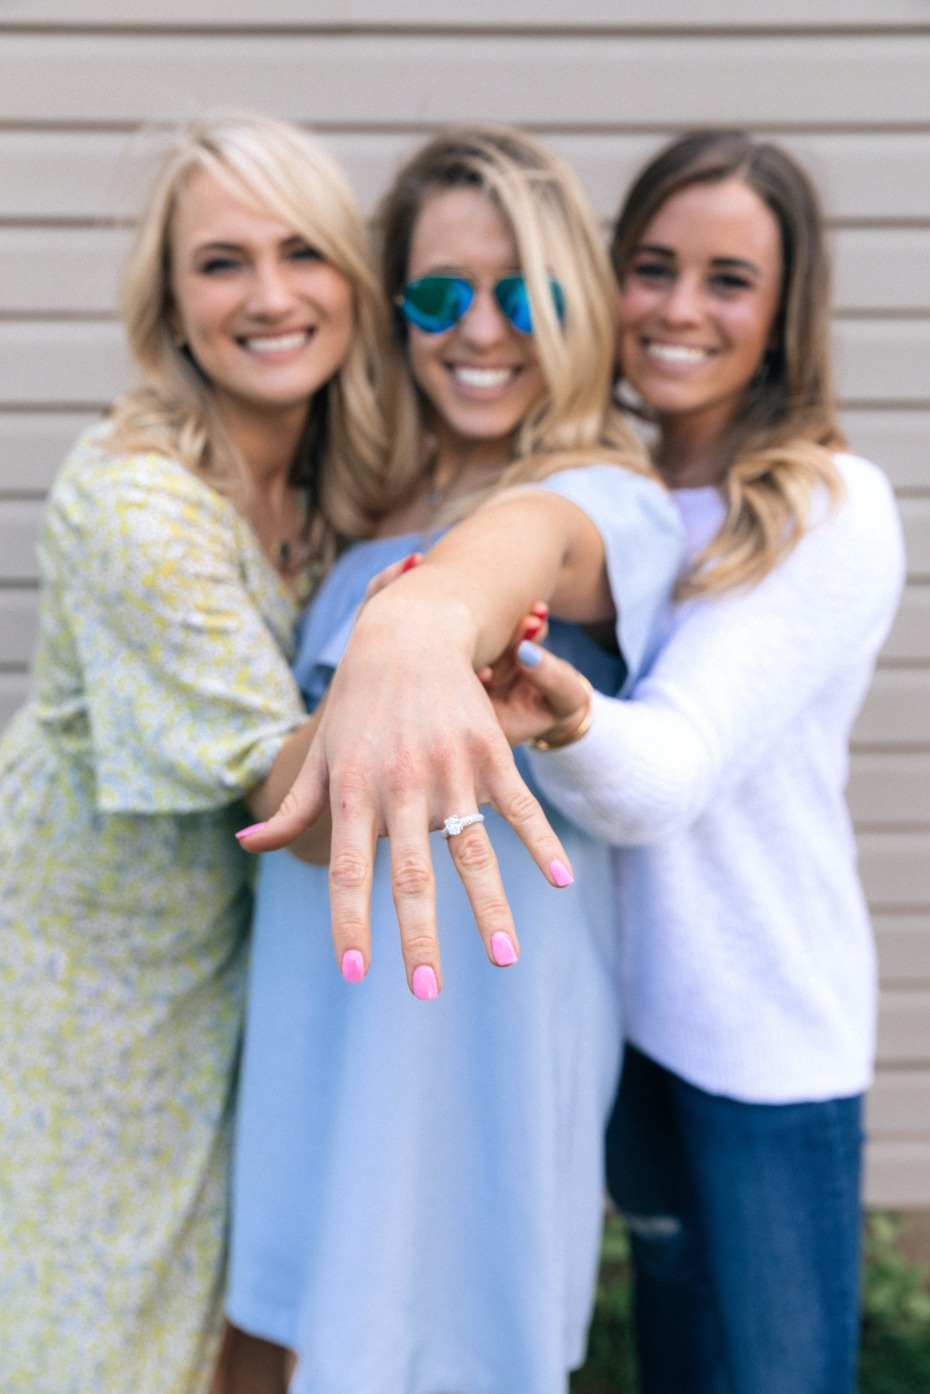 5 Things to Do Instead of Firing Your Bridesmaid